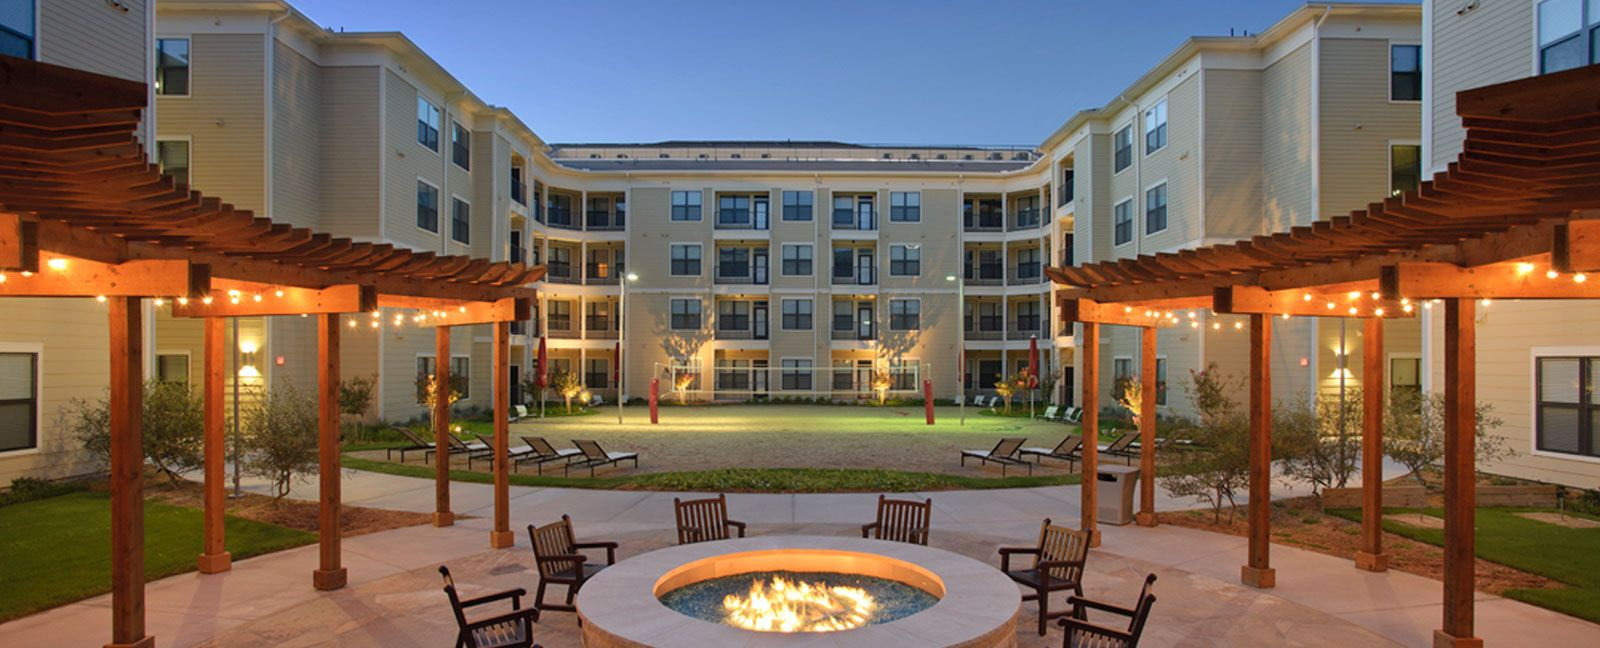 Best College Dorms 10 college dorms that areBest College Dorms